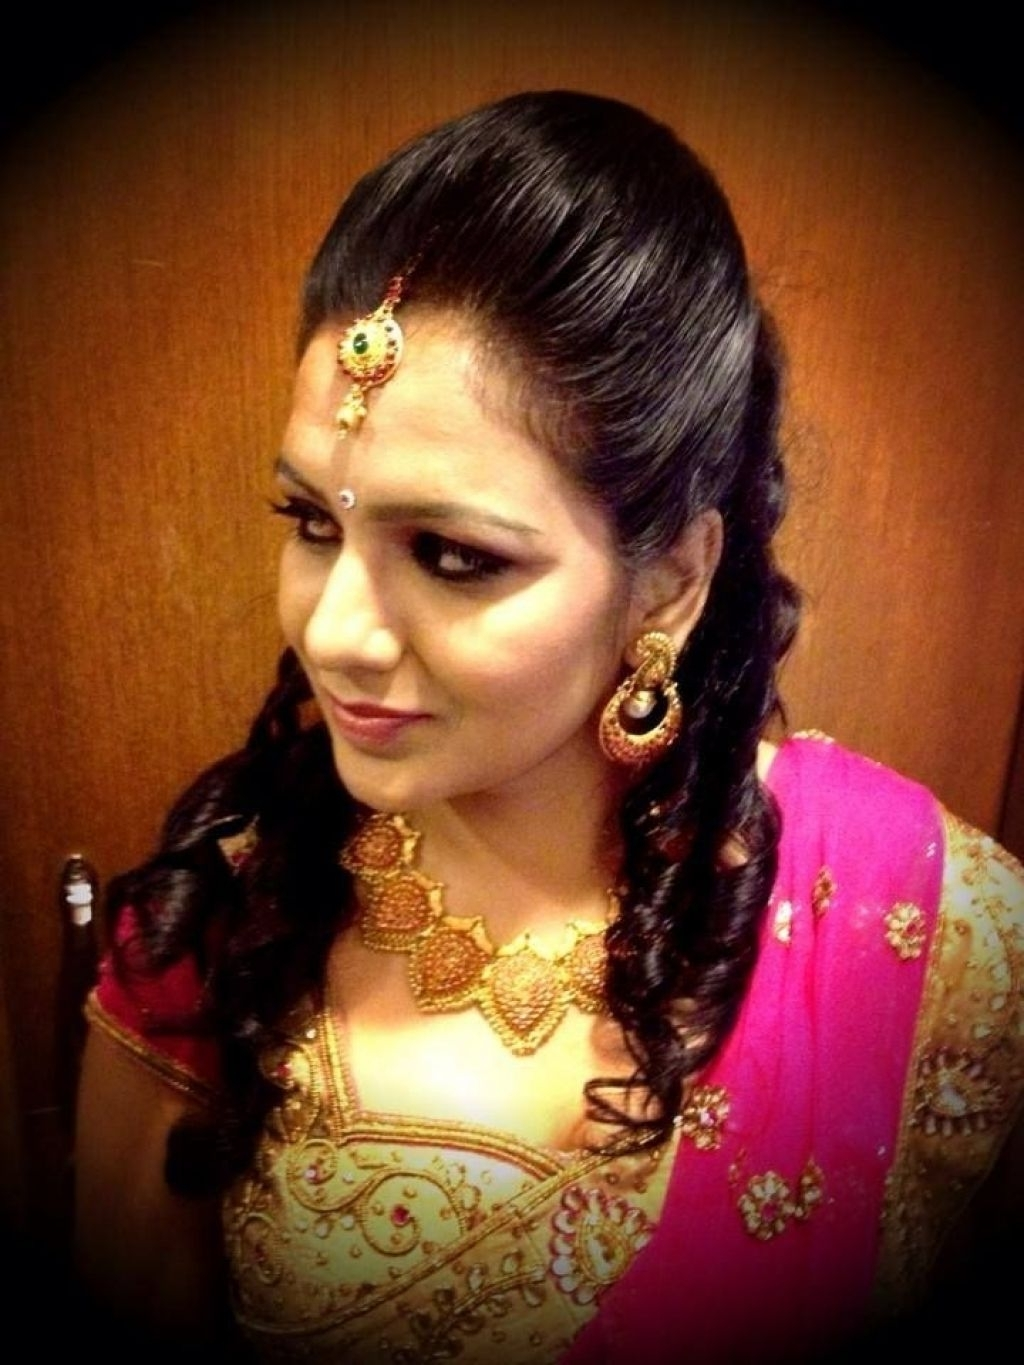 South Indian Bridal Reception Hairstyle Indian Bridal Hairstyles In Most Recent Wedding Reception Hairstyles For Indian Bride (View 7 of 15)